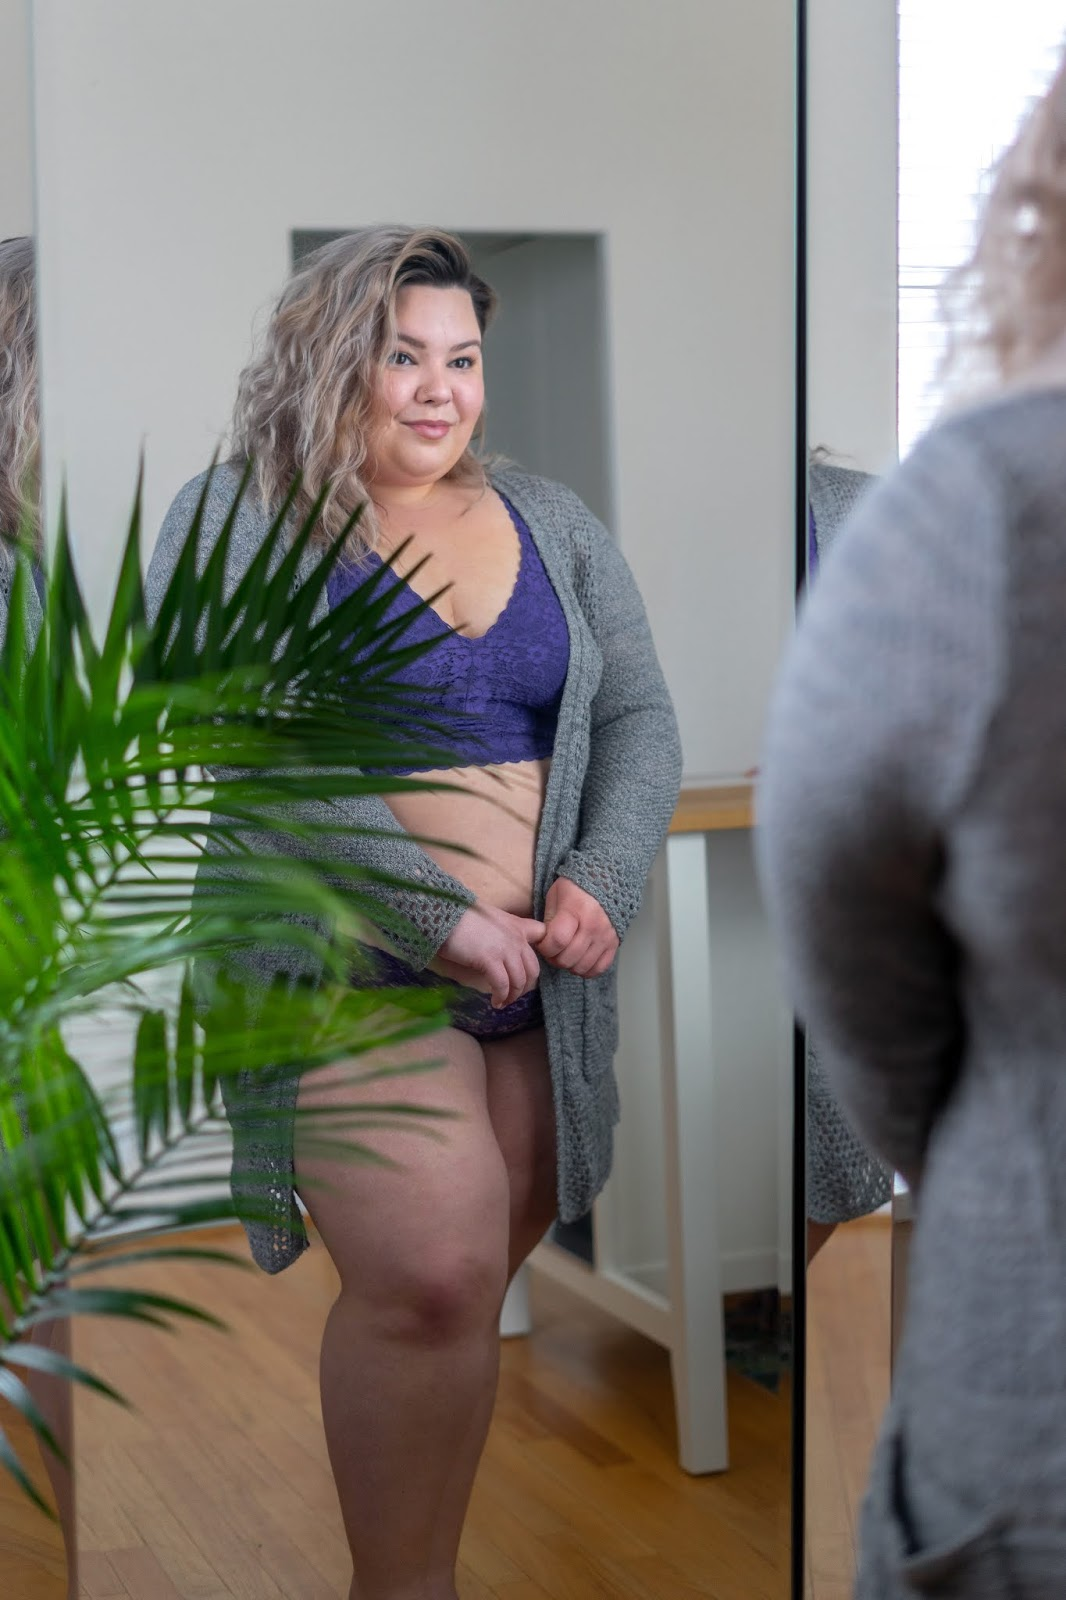 Chicago Plus Size Petite Fashion Blogger, YouTuber, and Model Natalie Craig, of Natalie in the City, shares how she builds confidence and some of her favorite lingerie